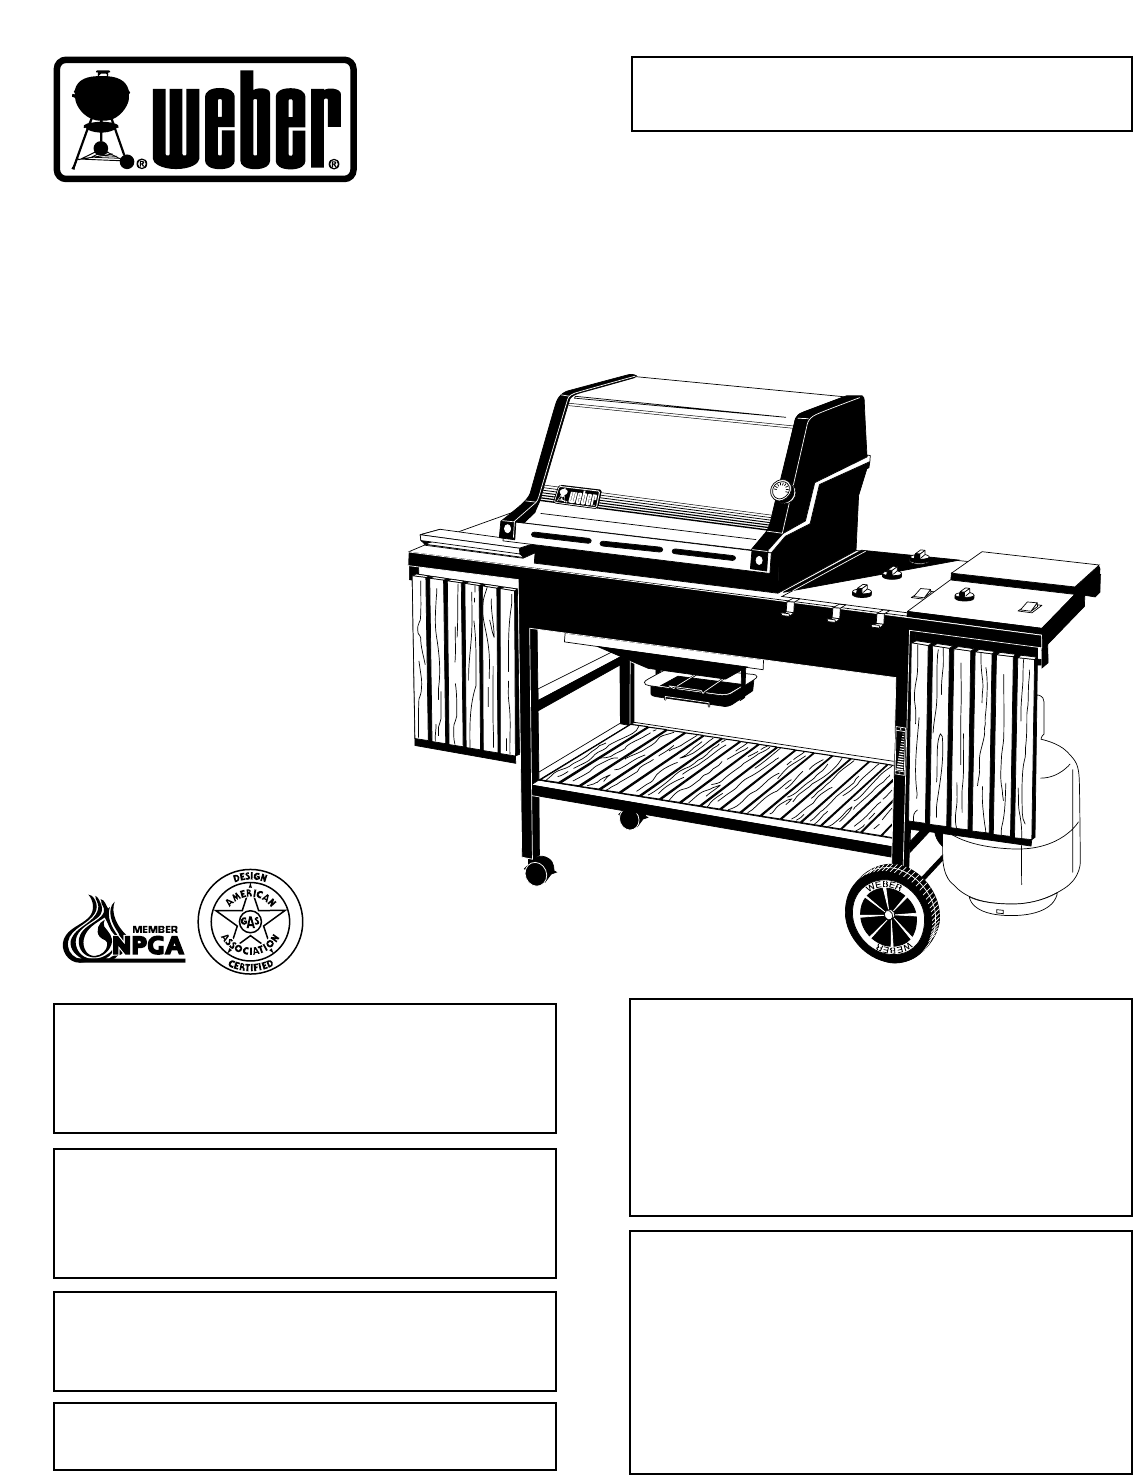 weber gas grill 4000 user guide. Black Bedroom Furniture Sets. Home Design Ideas